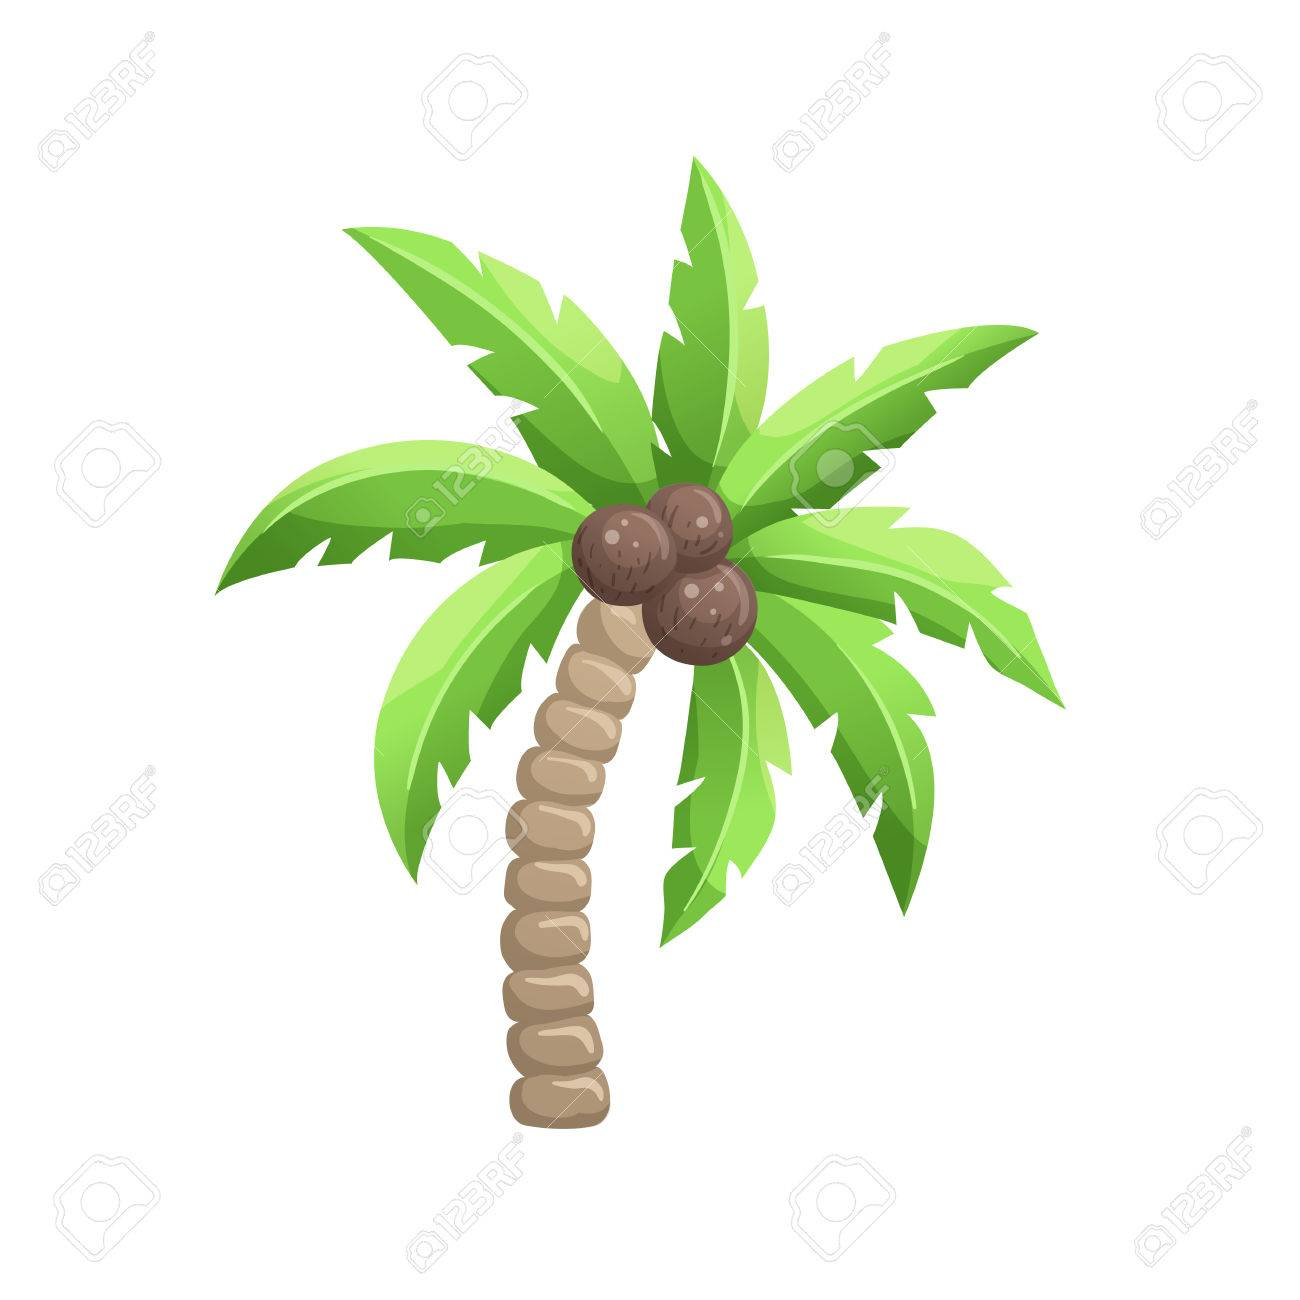 Bright Cartoon Palm Tree Icon Colorfulcoconut Symbol Isolated On White Background Vector Illustration